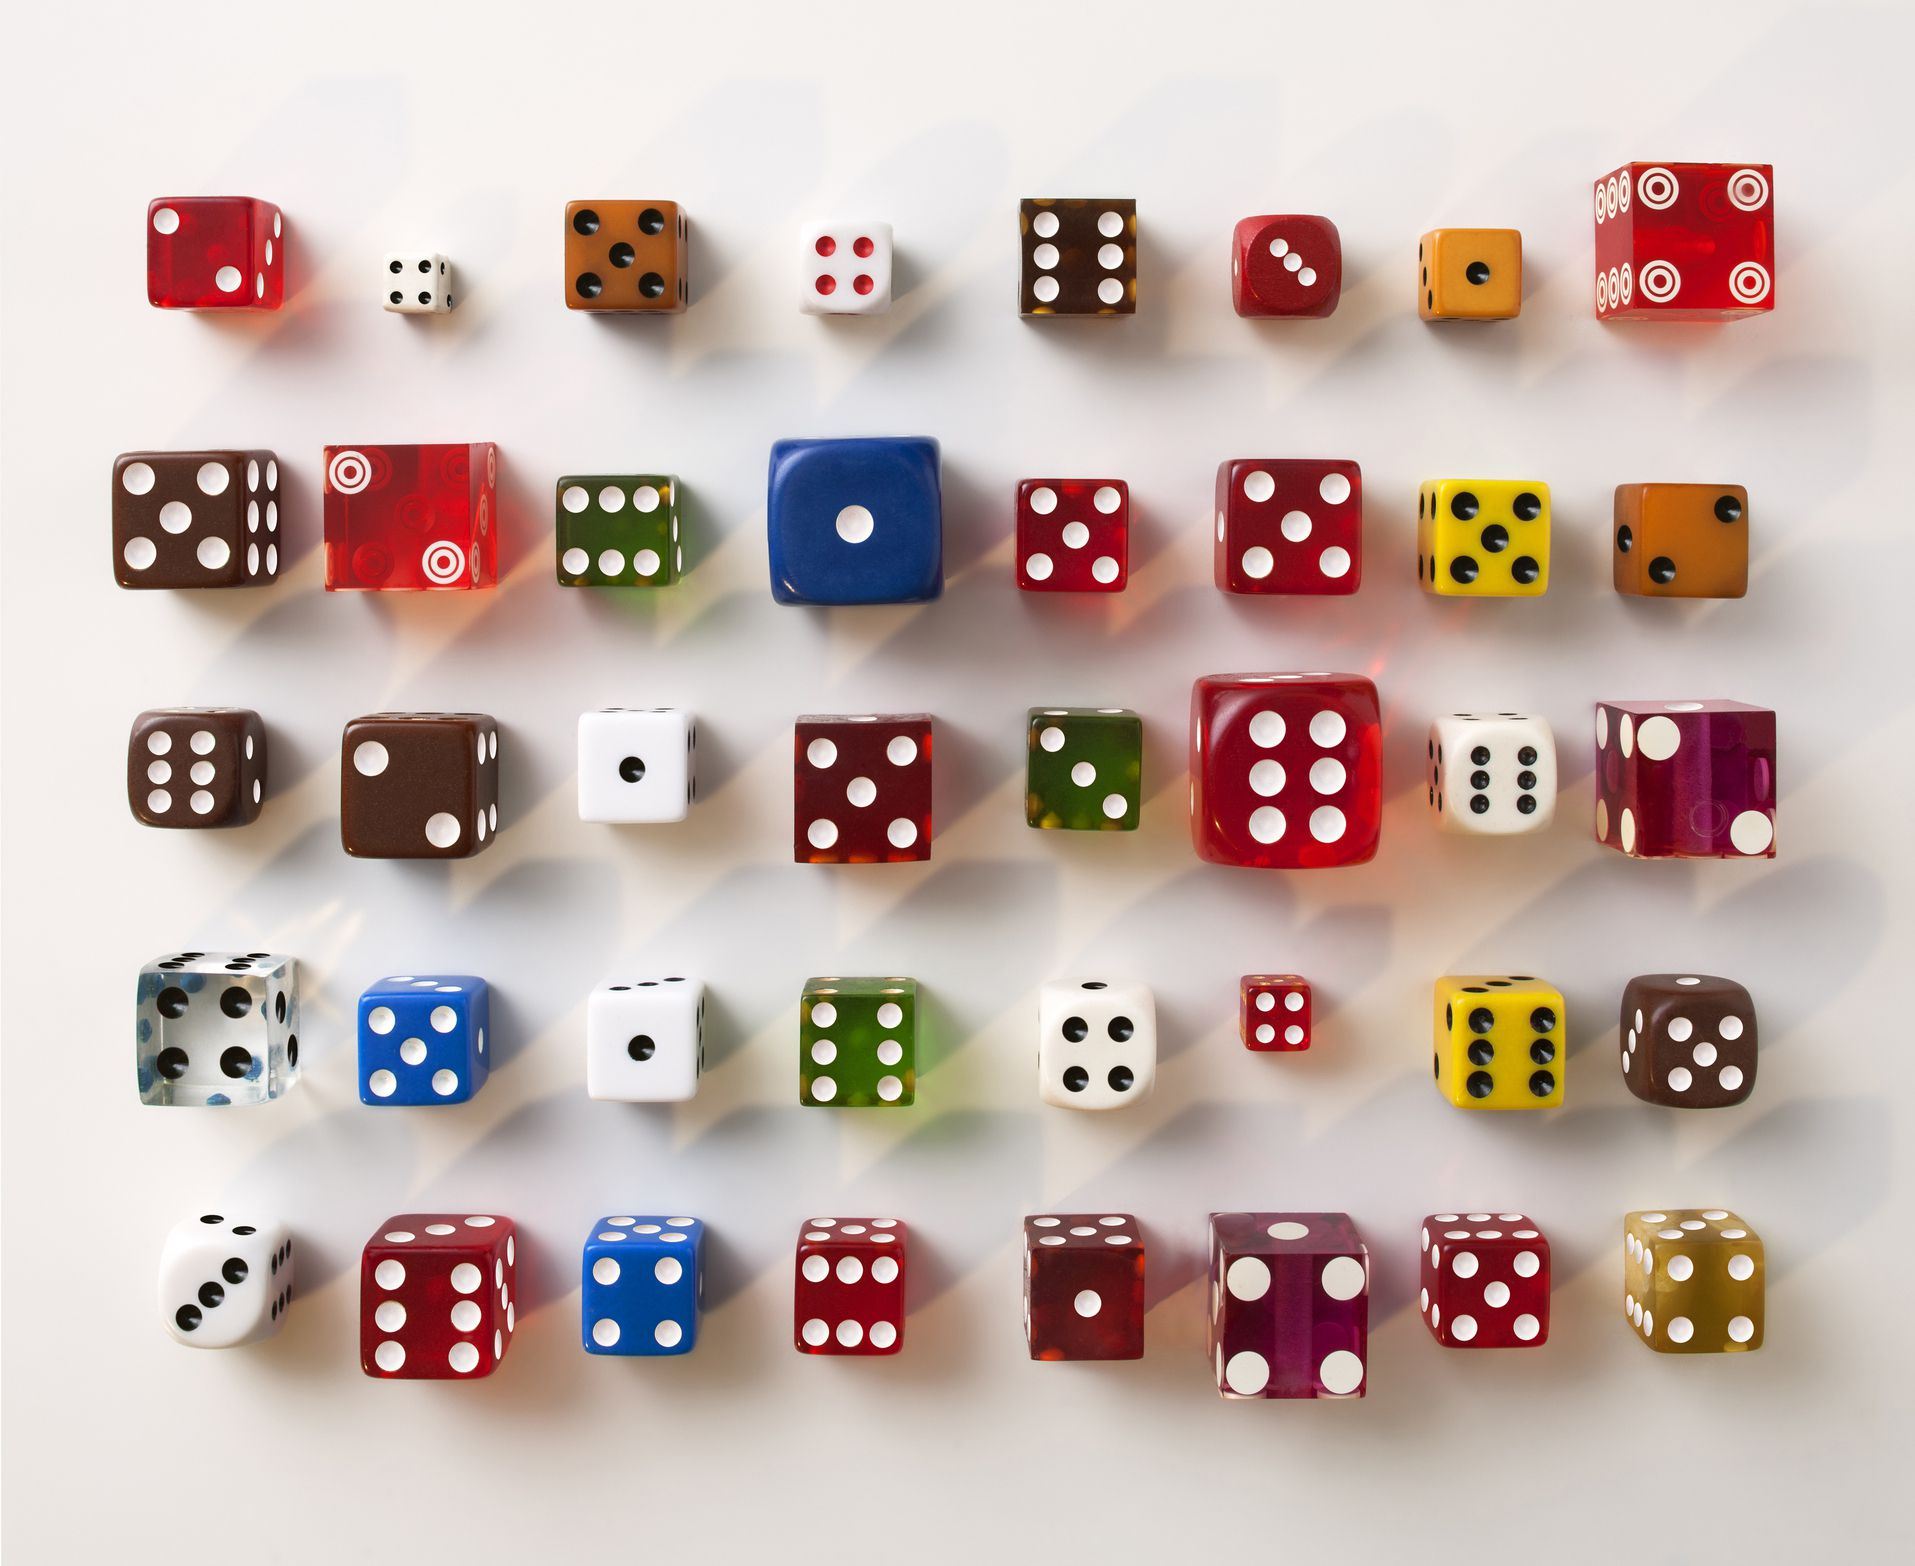 Dice Probabilities Rolling 2 Six Sided Dice